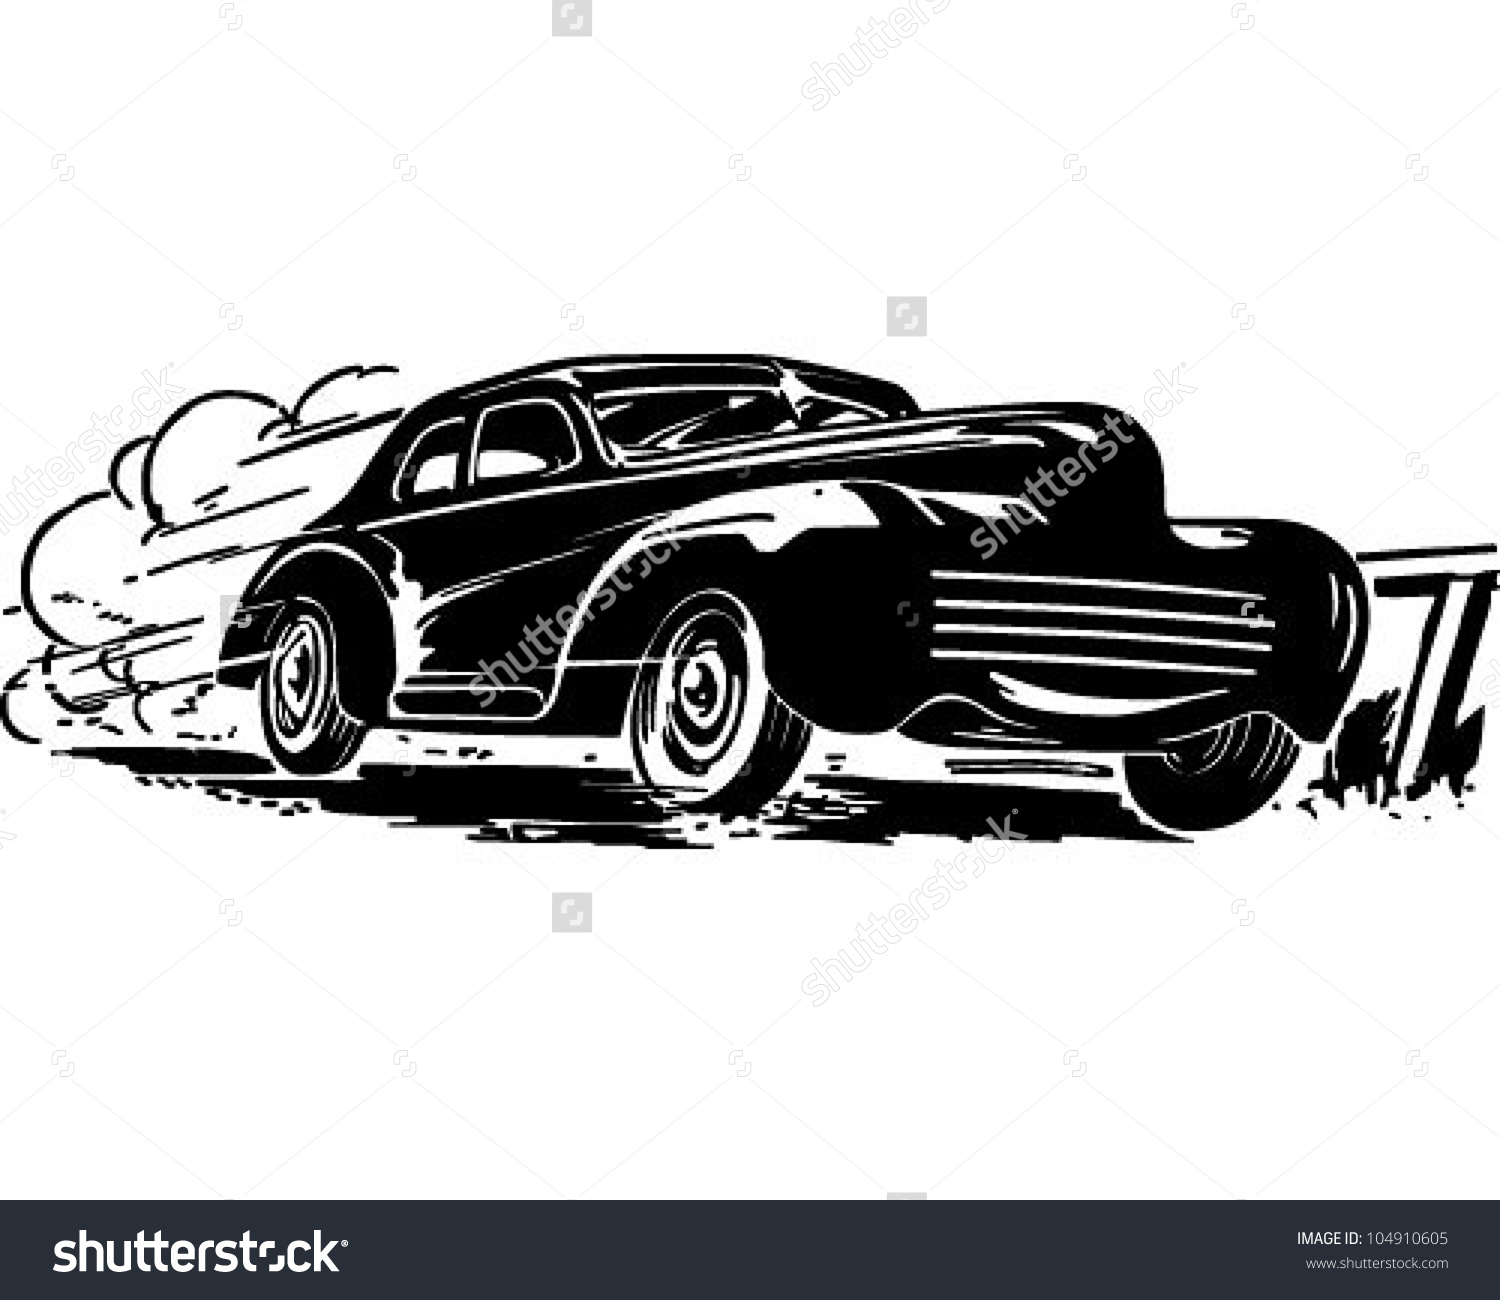 Speeding Car Retro Clipart Illustration Stock Vector 104910605.